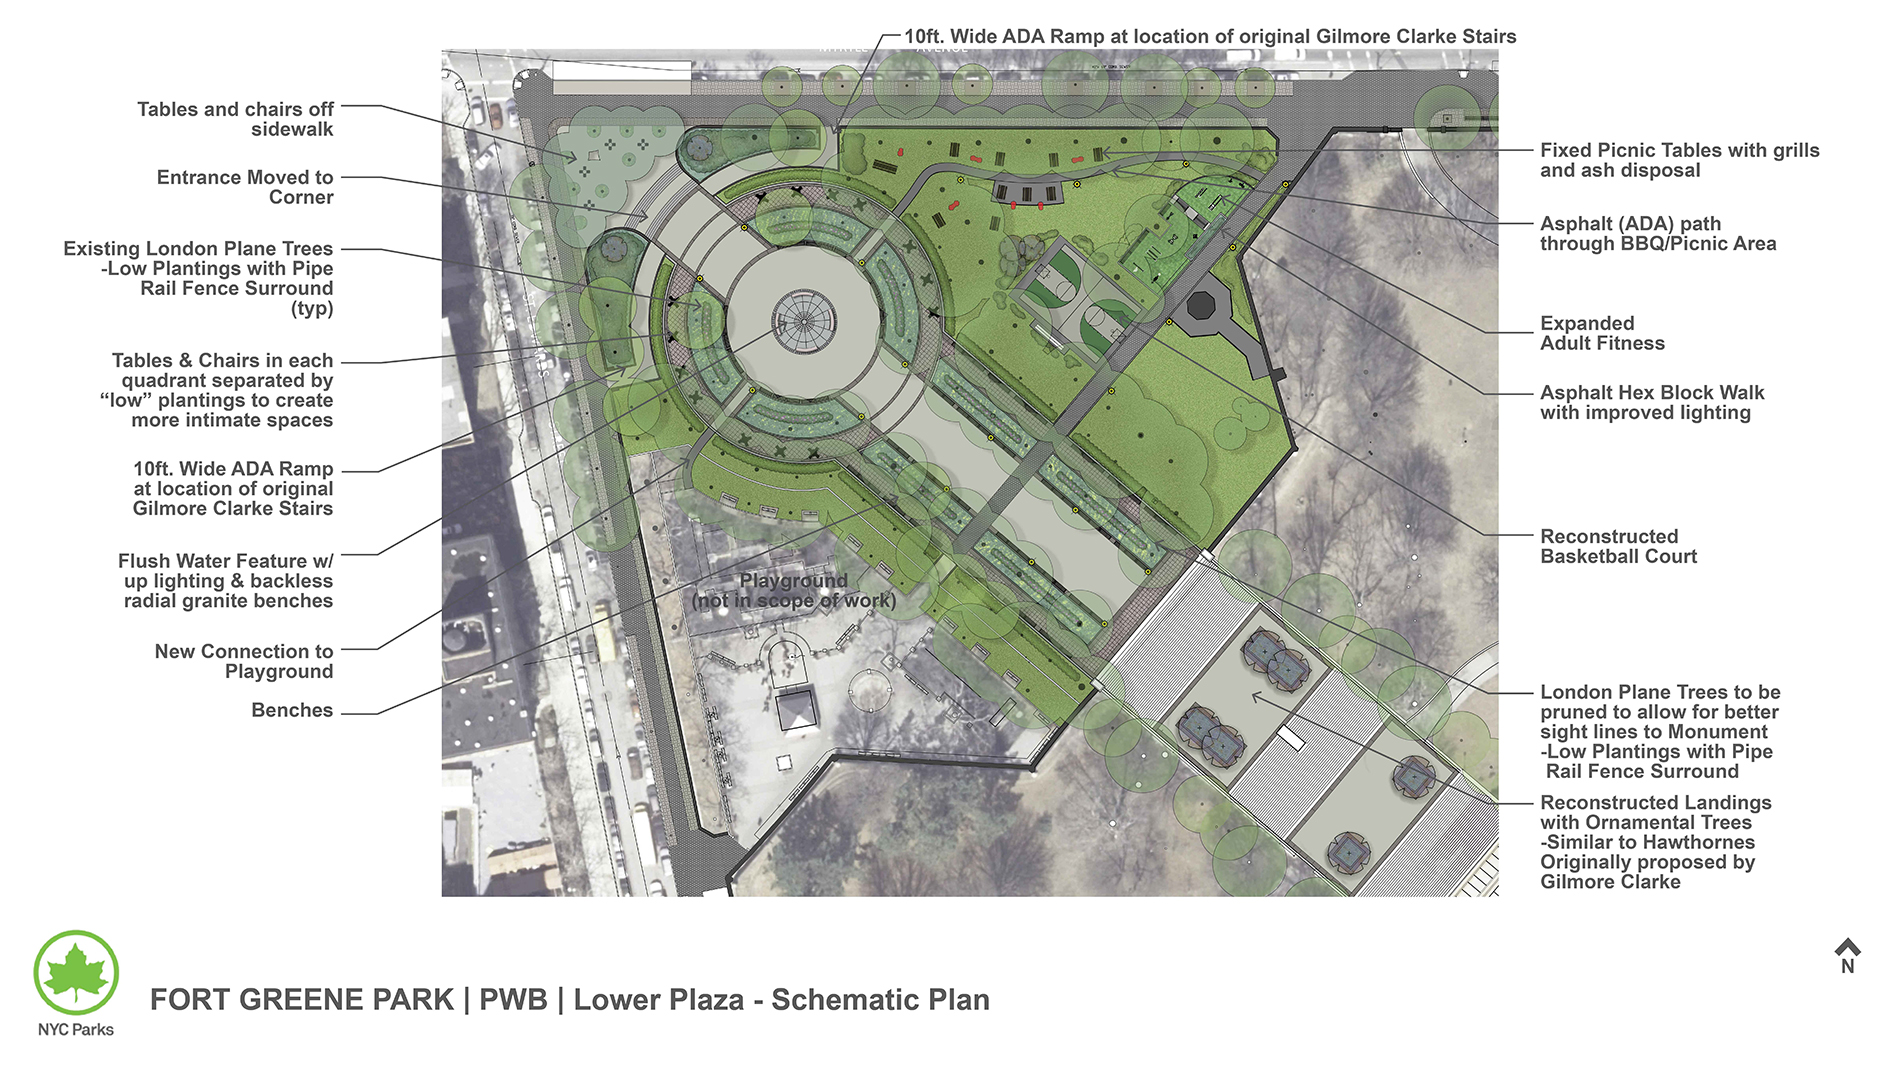 Design of Fort Greene Park Plaza and Pavement Reconstruction